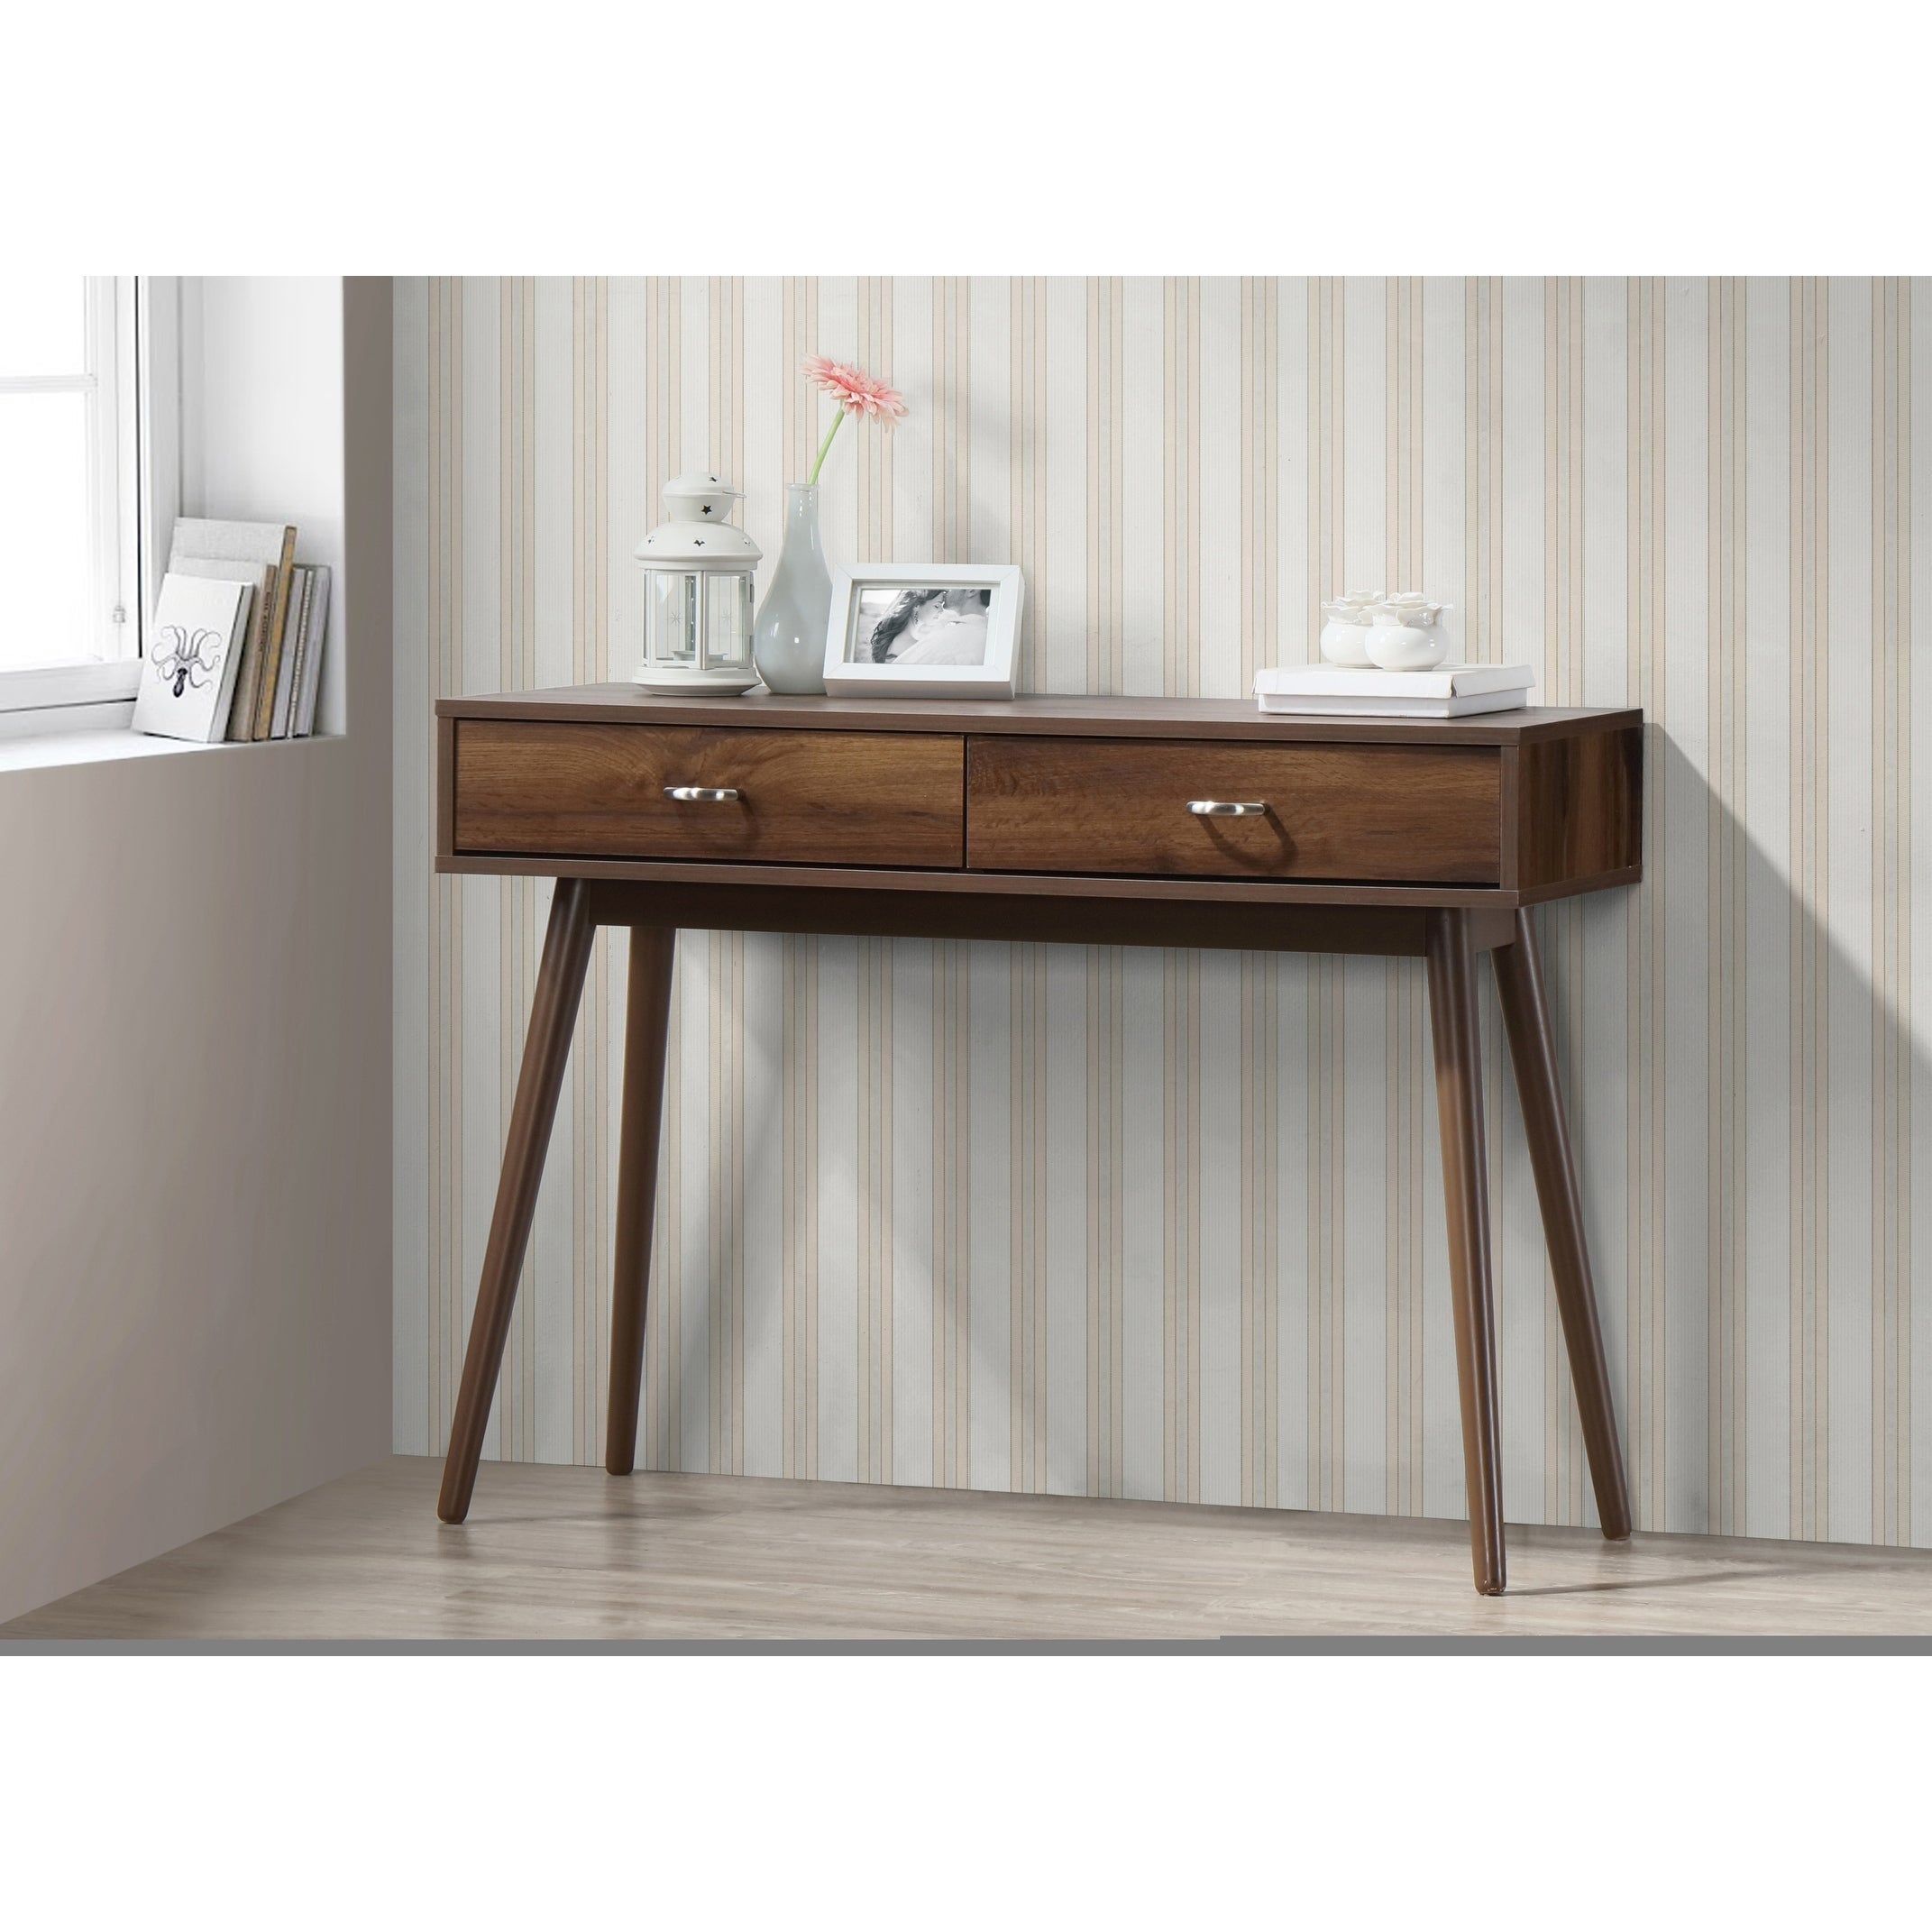 Image of: Shop Black Friday Deals On Montage Mid Century Desk With Drawers Walnut Overstock 17839605